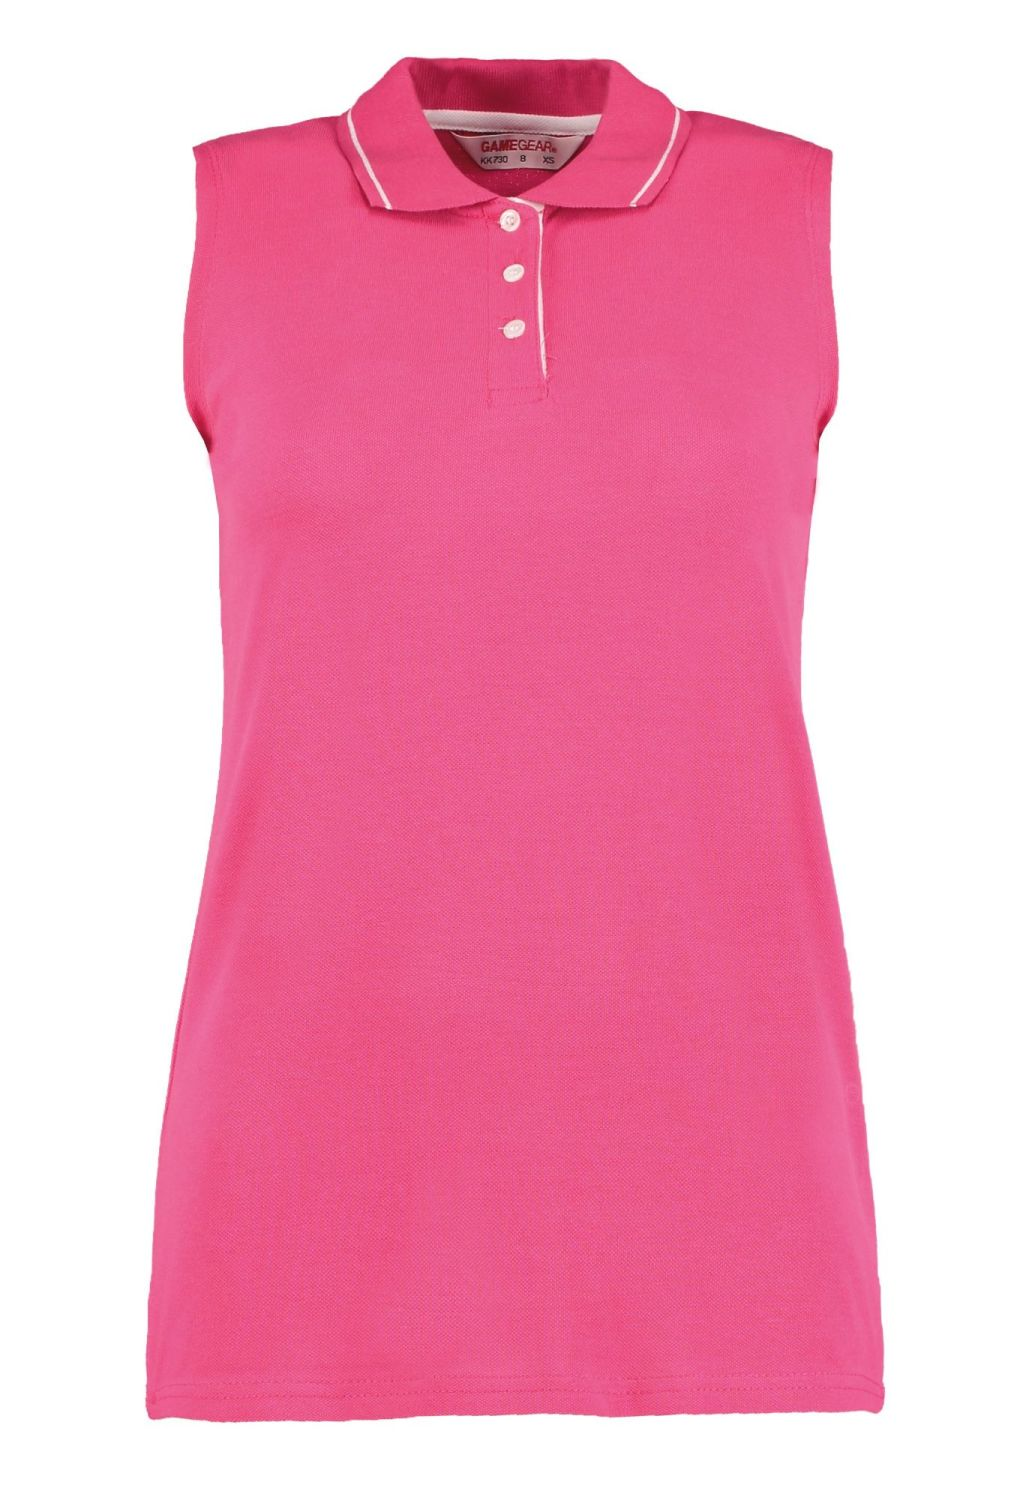 Women's sleeveless pique polo shirt